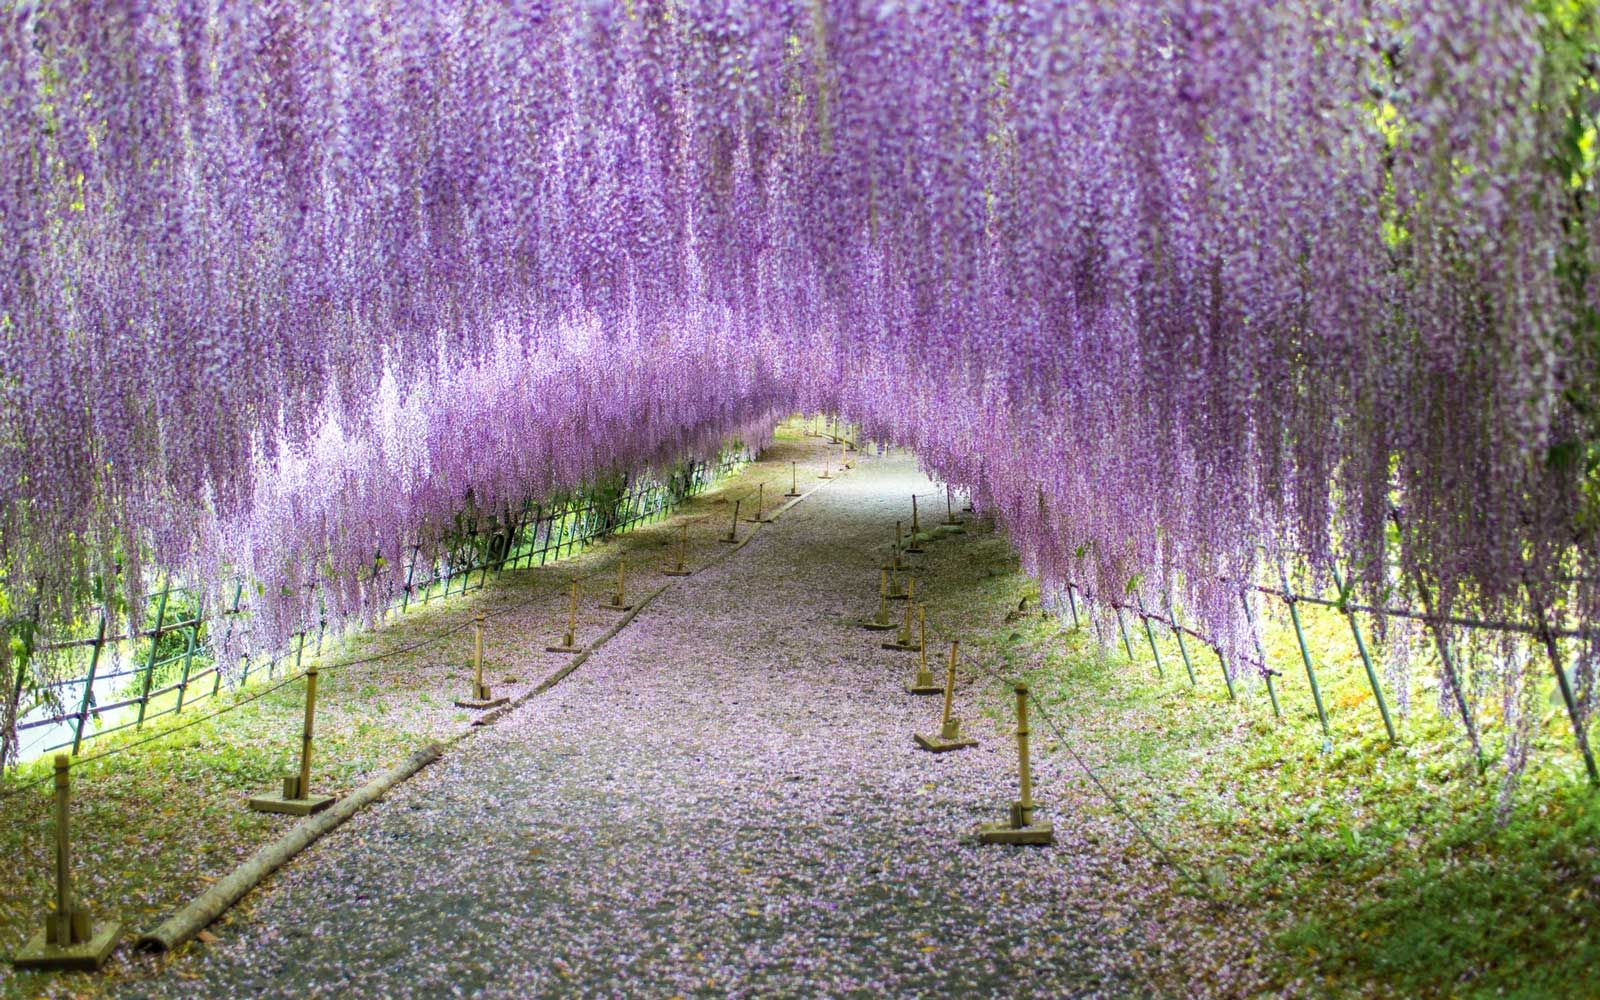 Japan S Wisteria Tunnels Are Even More Magical Than Its Cherry Blossoms Here S Where To See The Best Blooms Wisteria Tunnel Wisteria Wisteria Plant